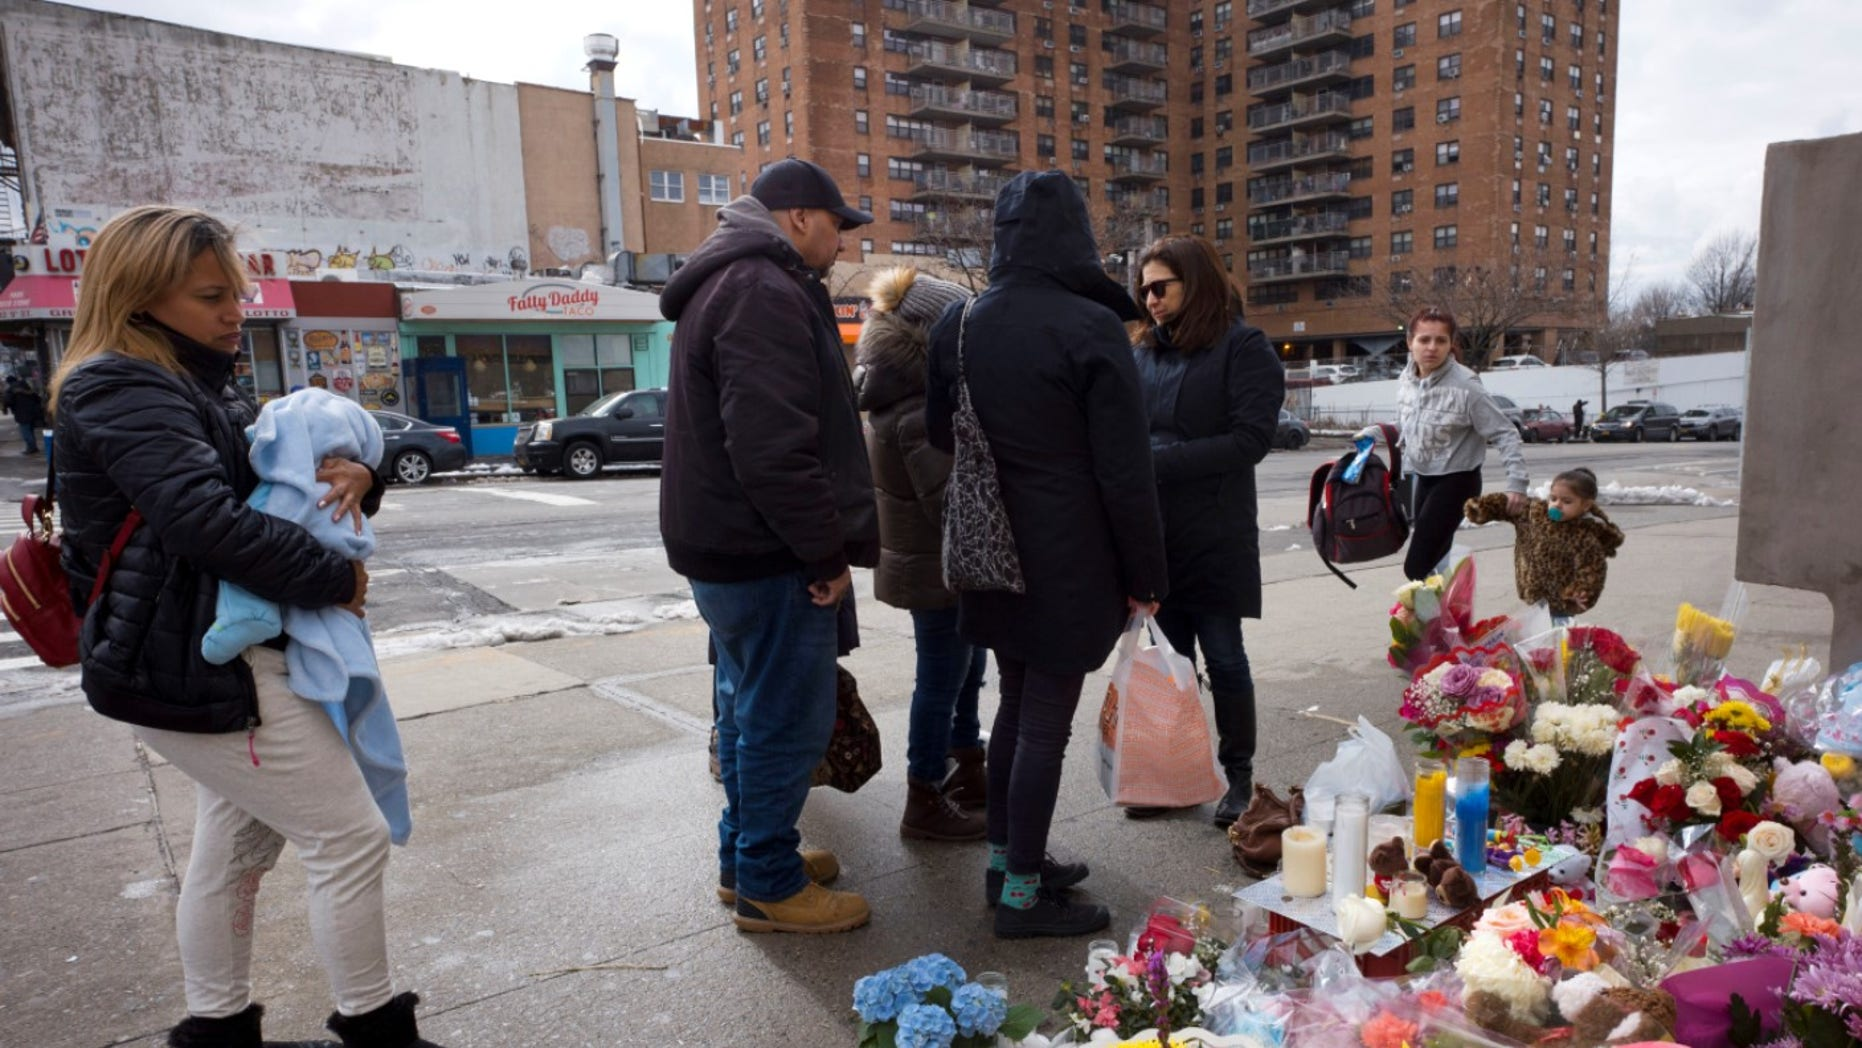 People gather at a sidewalk memorial for two children who were killed in March when they were struck by a car driven by a woman who likely had a seizure behind the wheel, in the Park Slope neighborhood of the Brooklyn borough of New York. The driver, Dorothy Bruns, was arrested at her Staten Island home on Thursday, May 3, and has been charged with manslaughter.